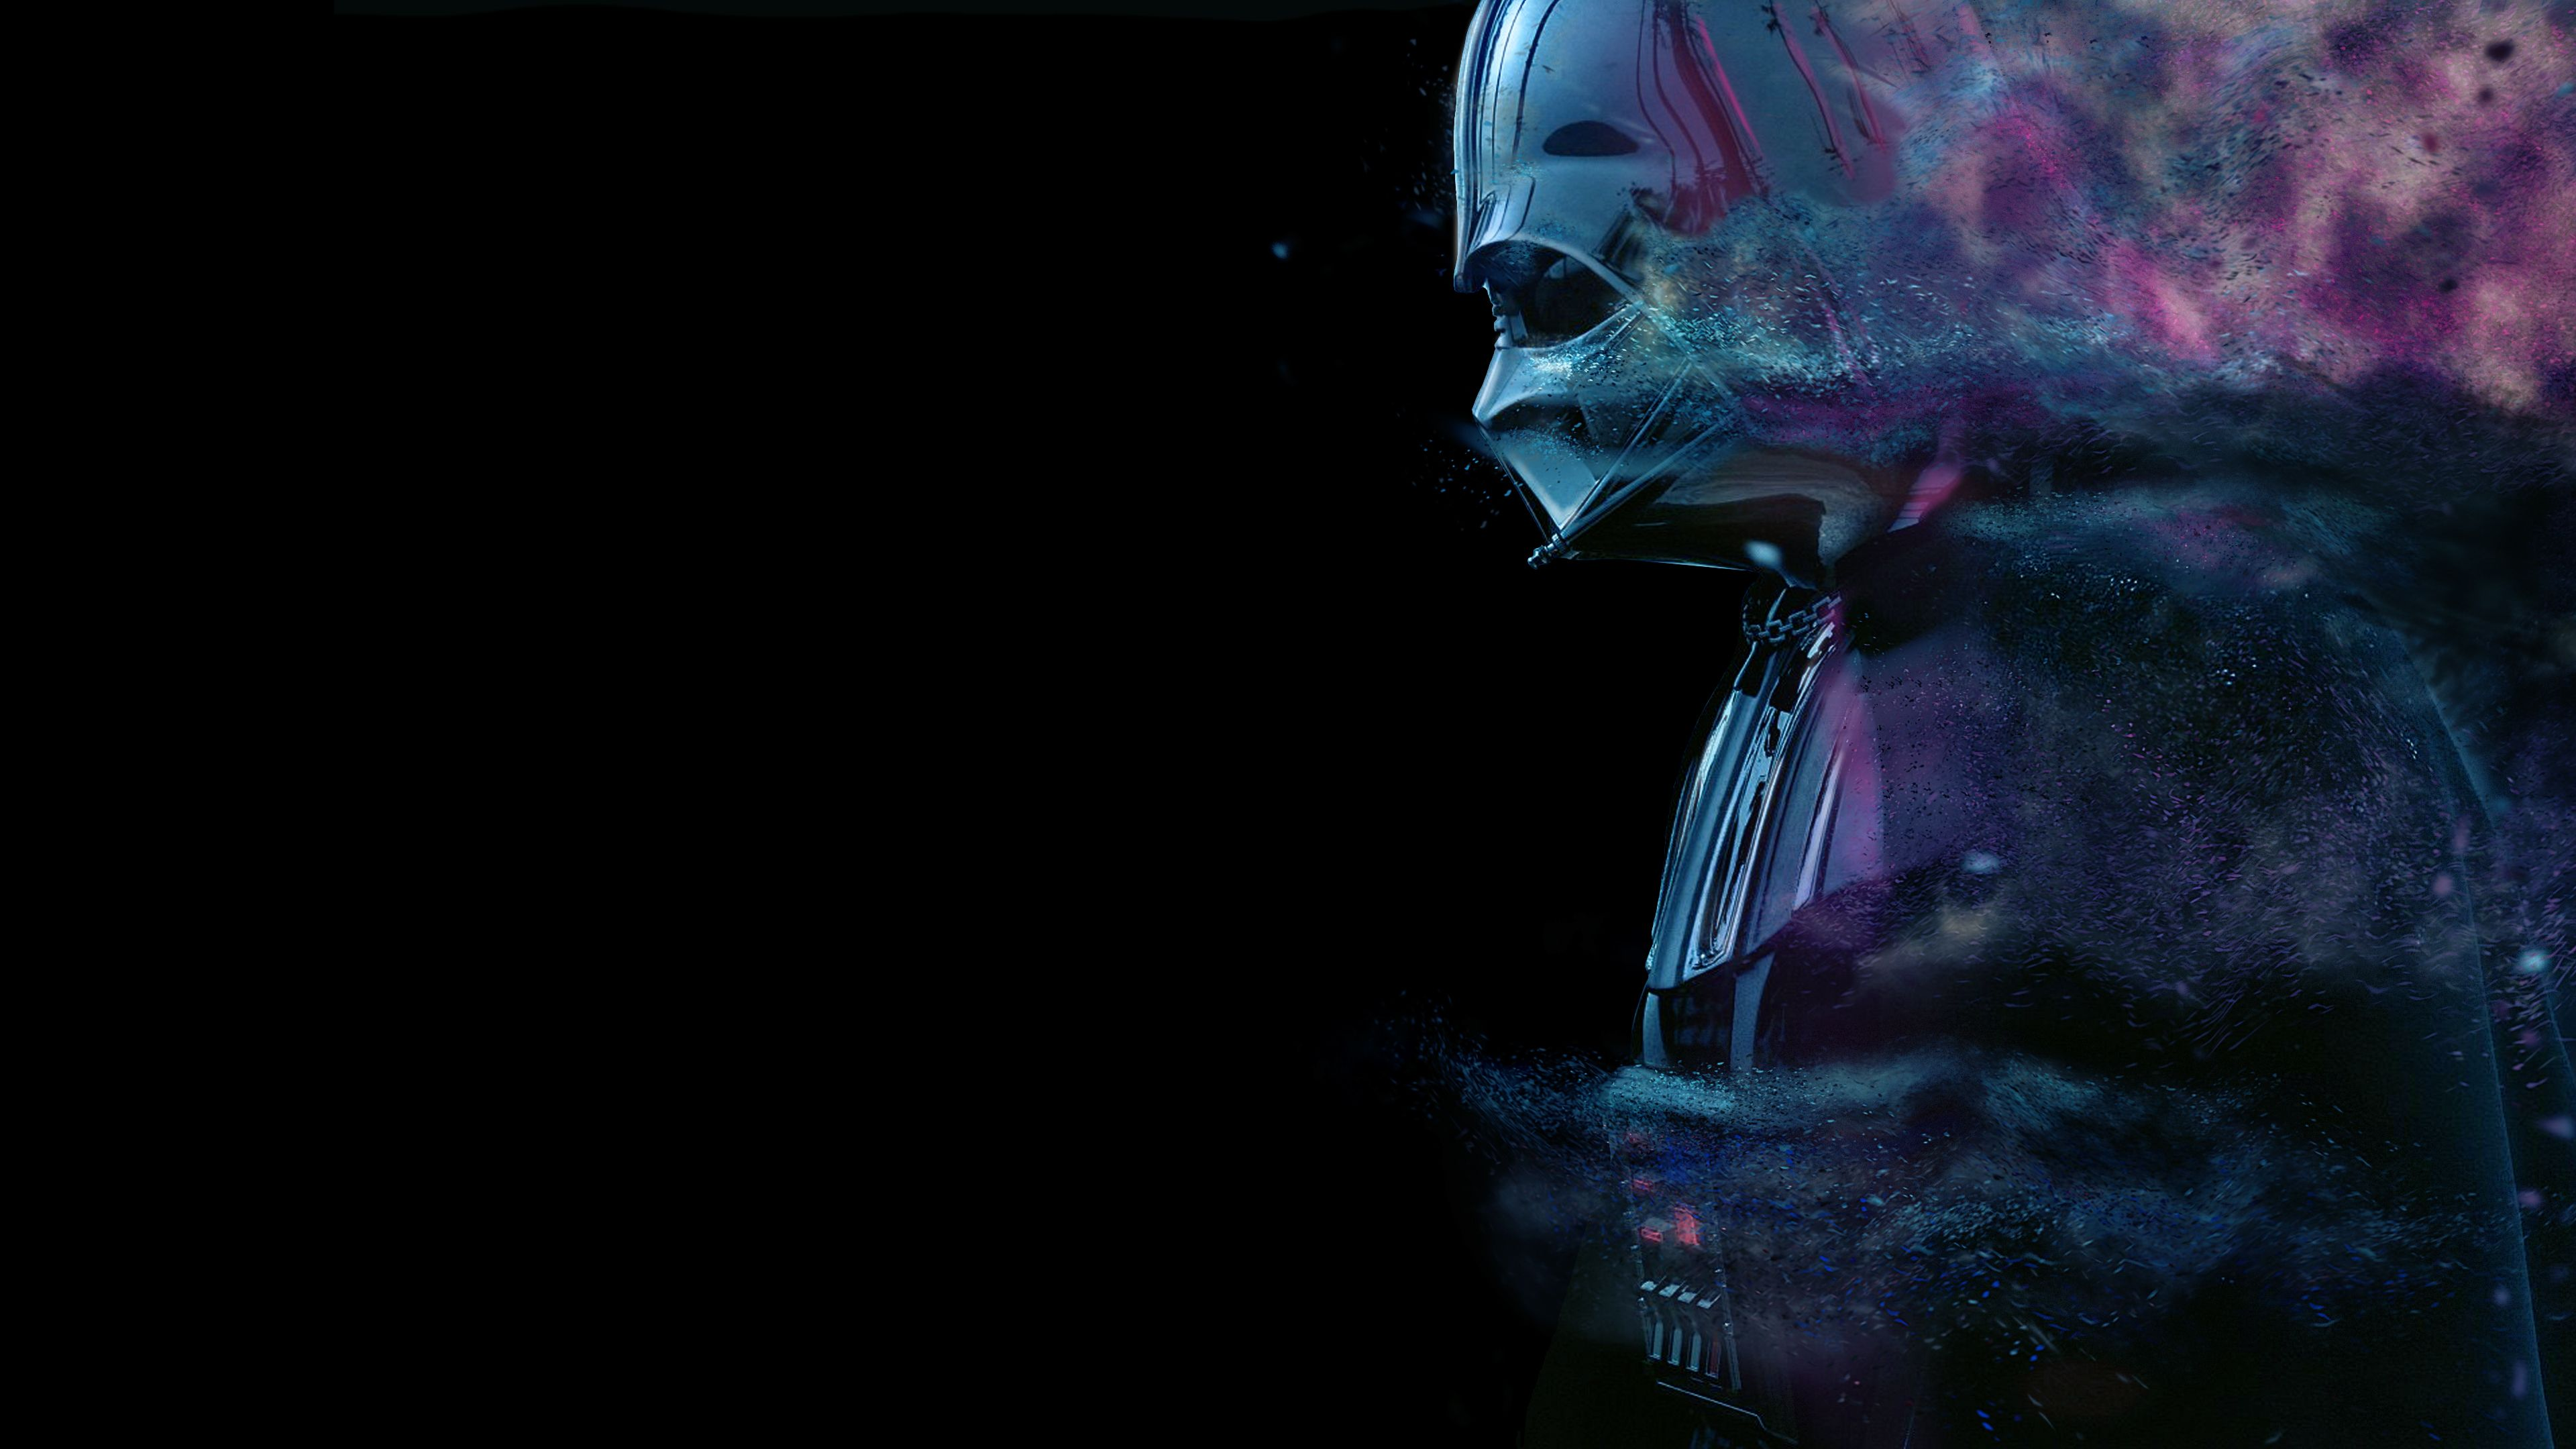 Neon Vader 4k Star Wars Wallpaper Desktop Wallpaper Wallpaper